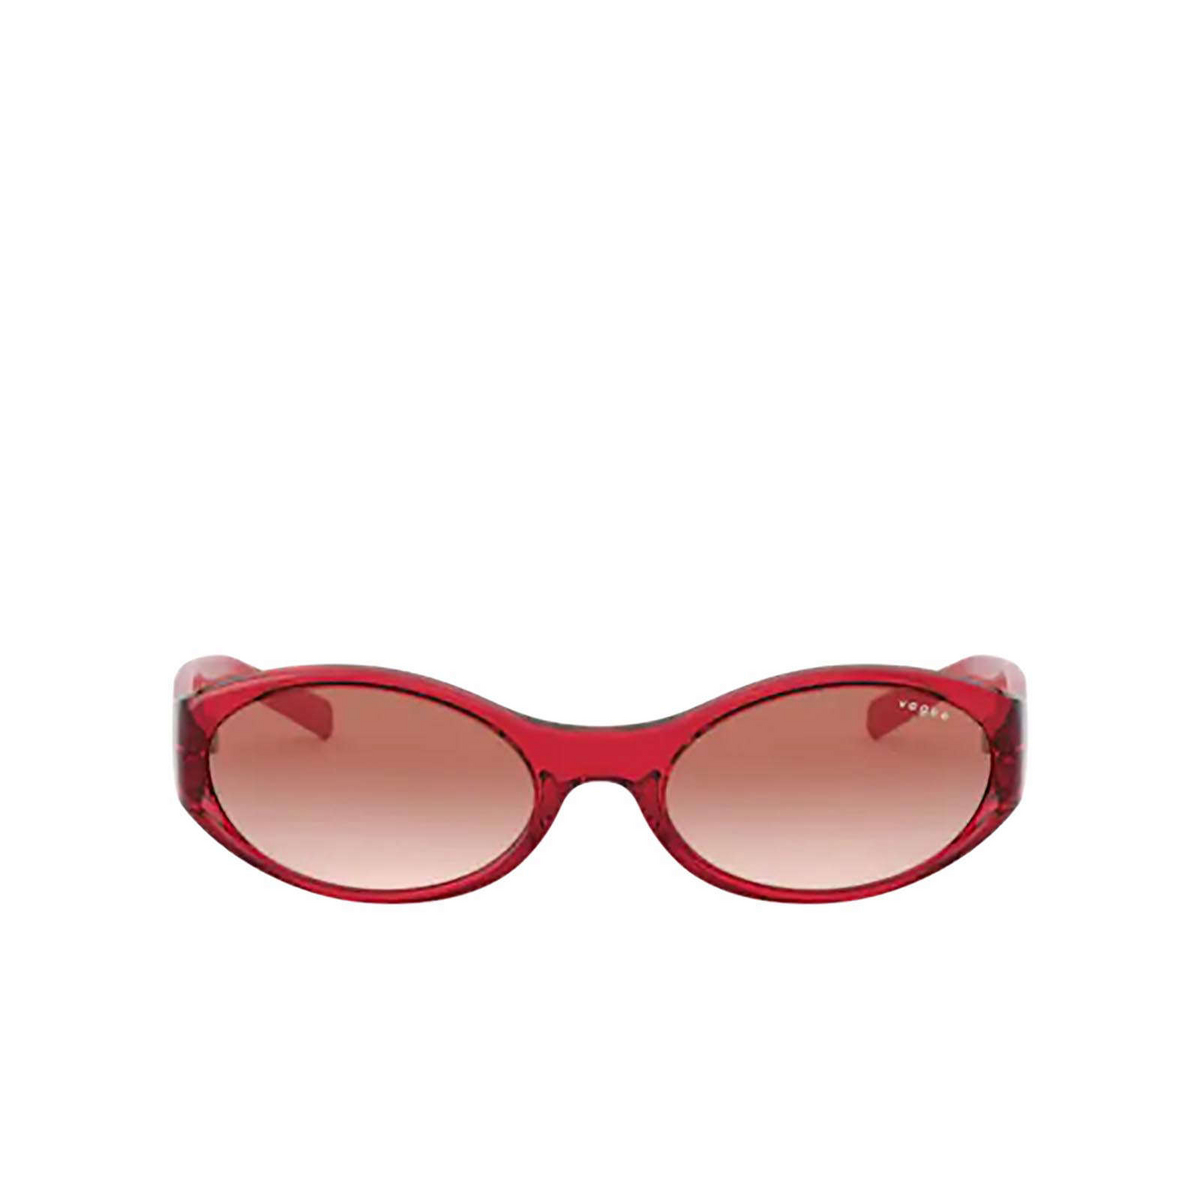 Vogue® Oval Sunglasses: VO5315S color Transparent Red 280313 - front view.